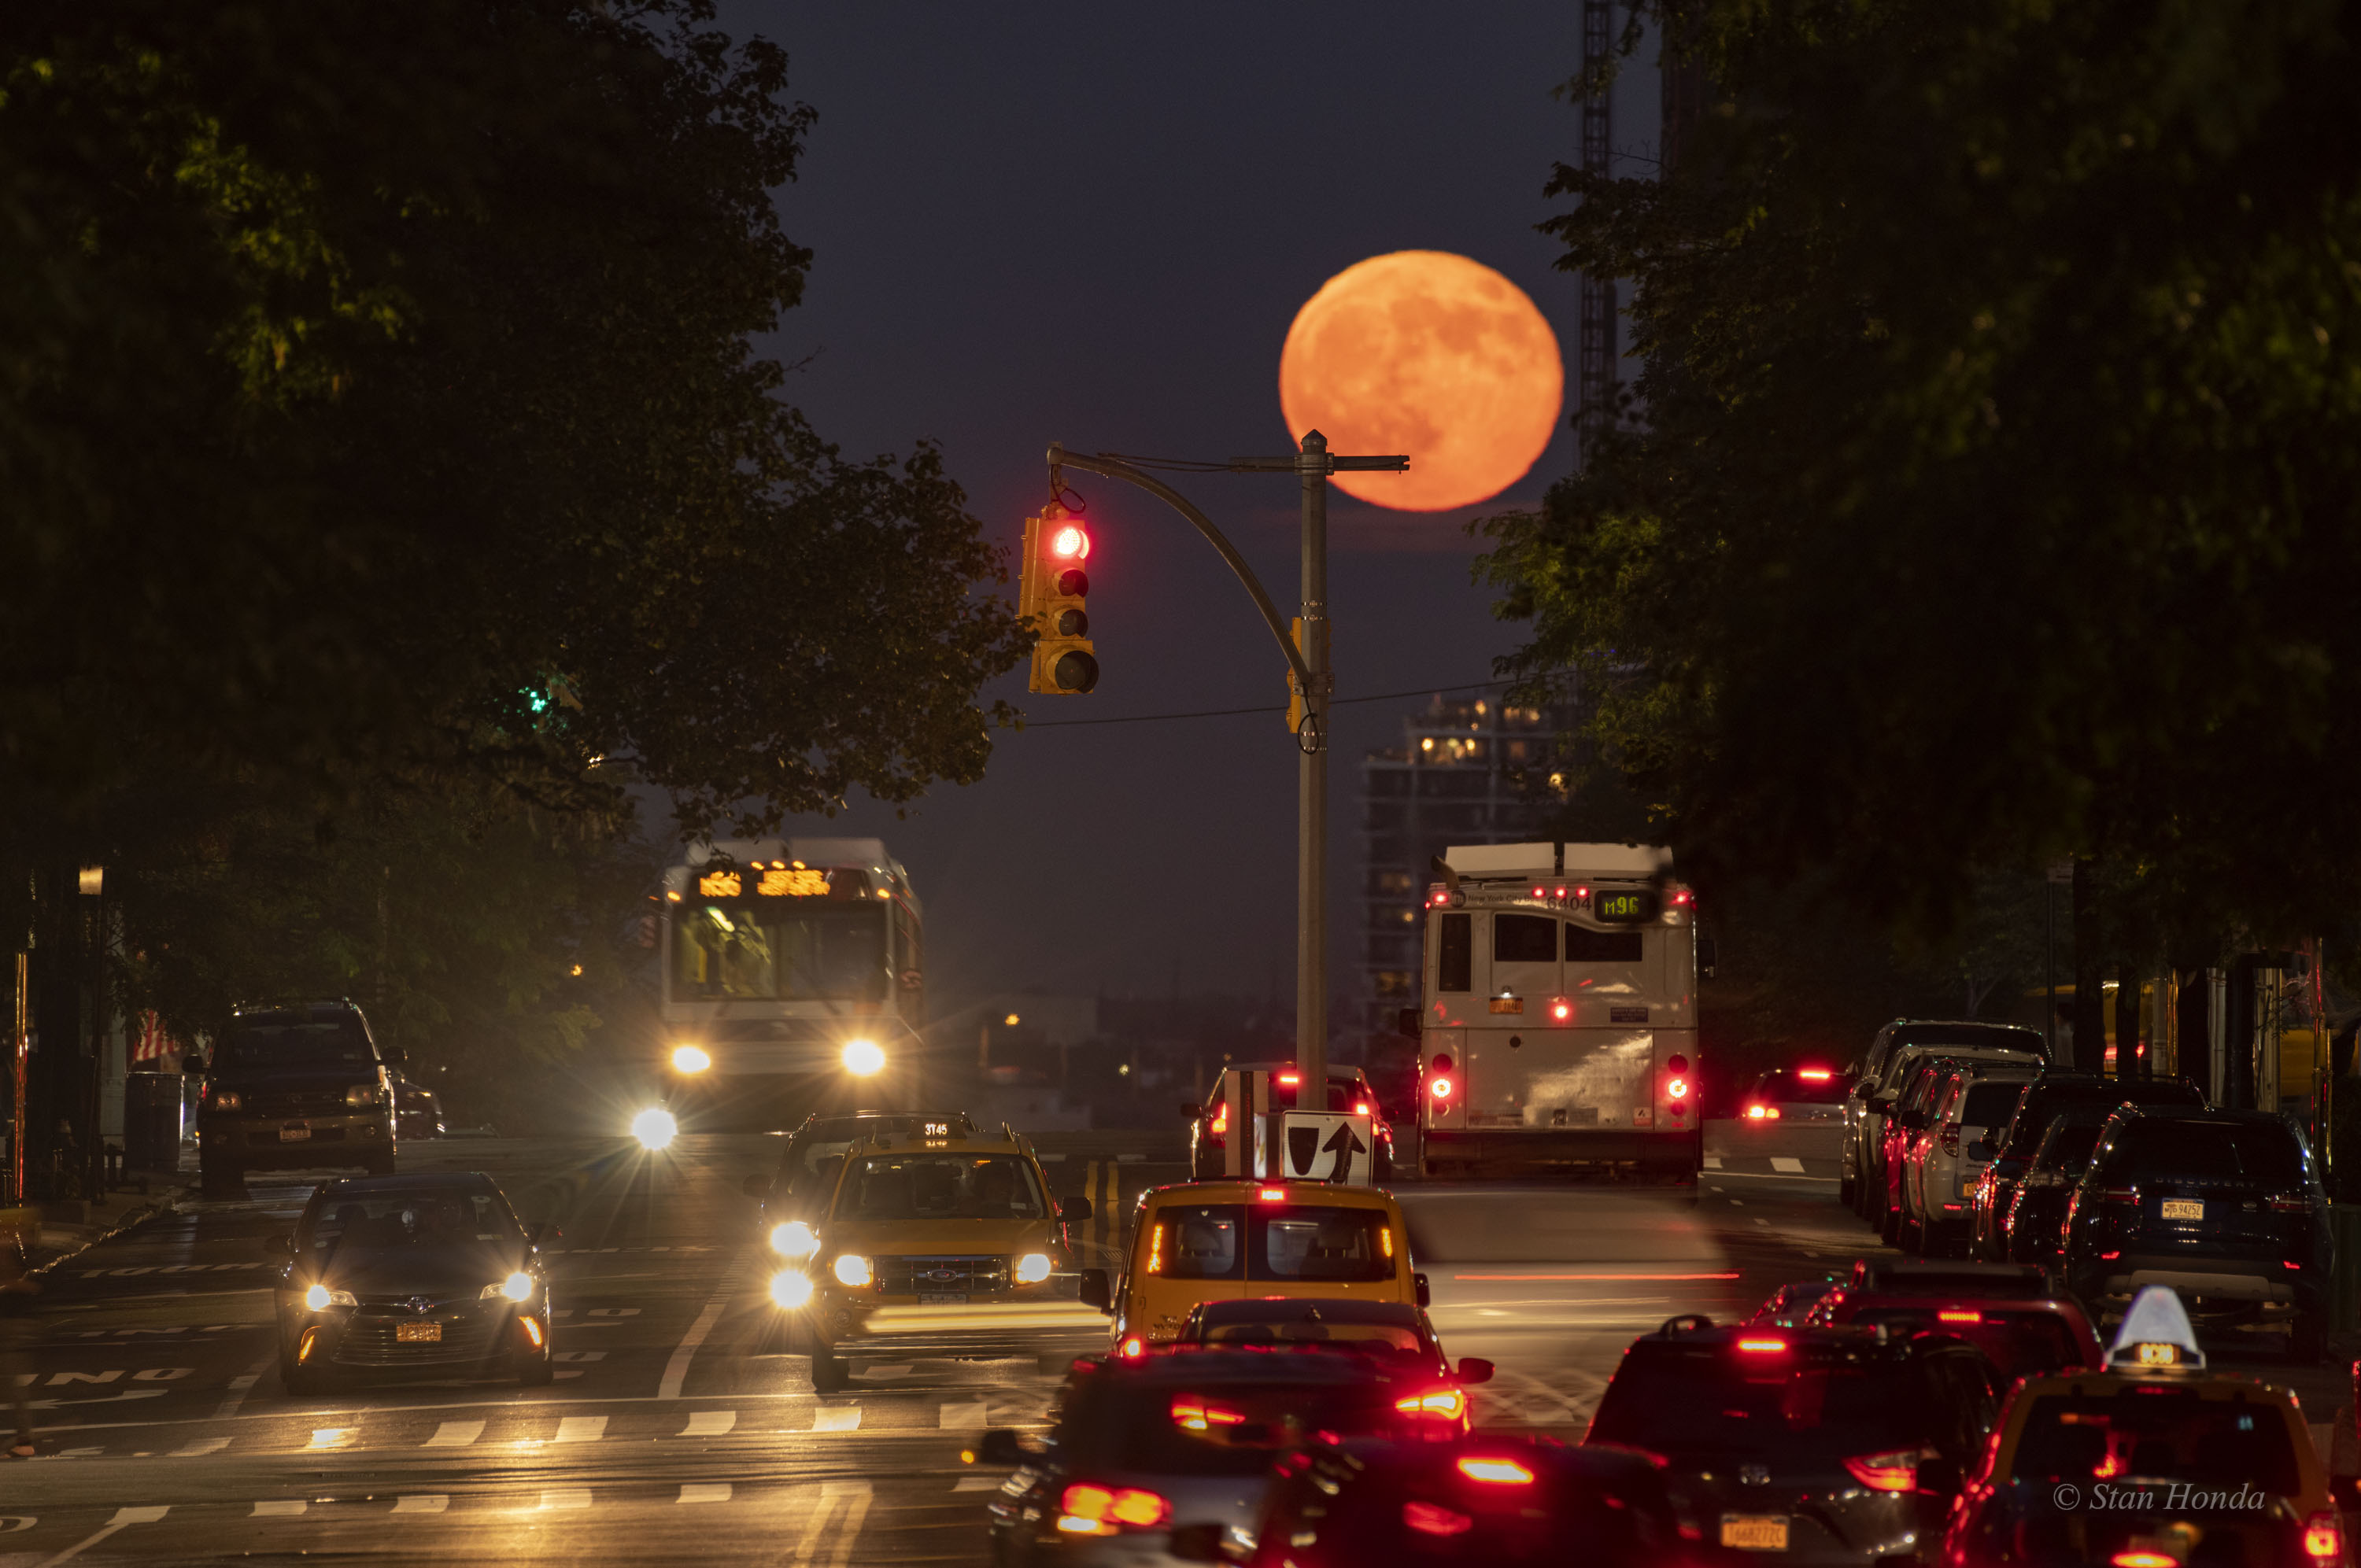 [ASTRONOMIA]   The East 96th Street Moon